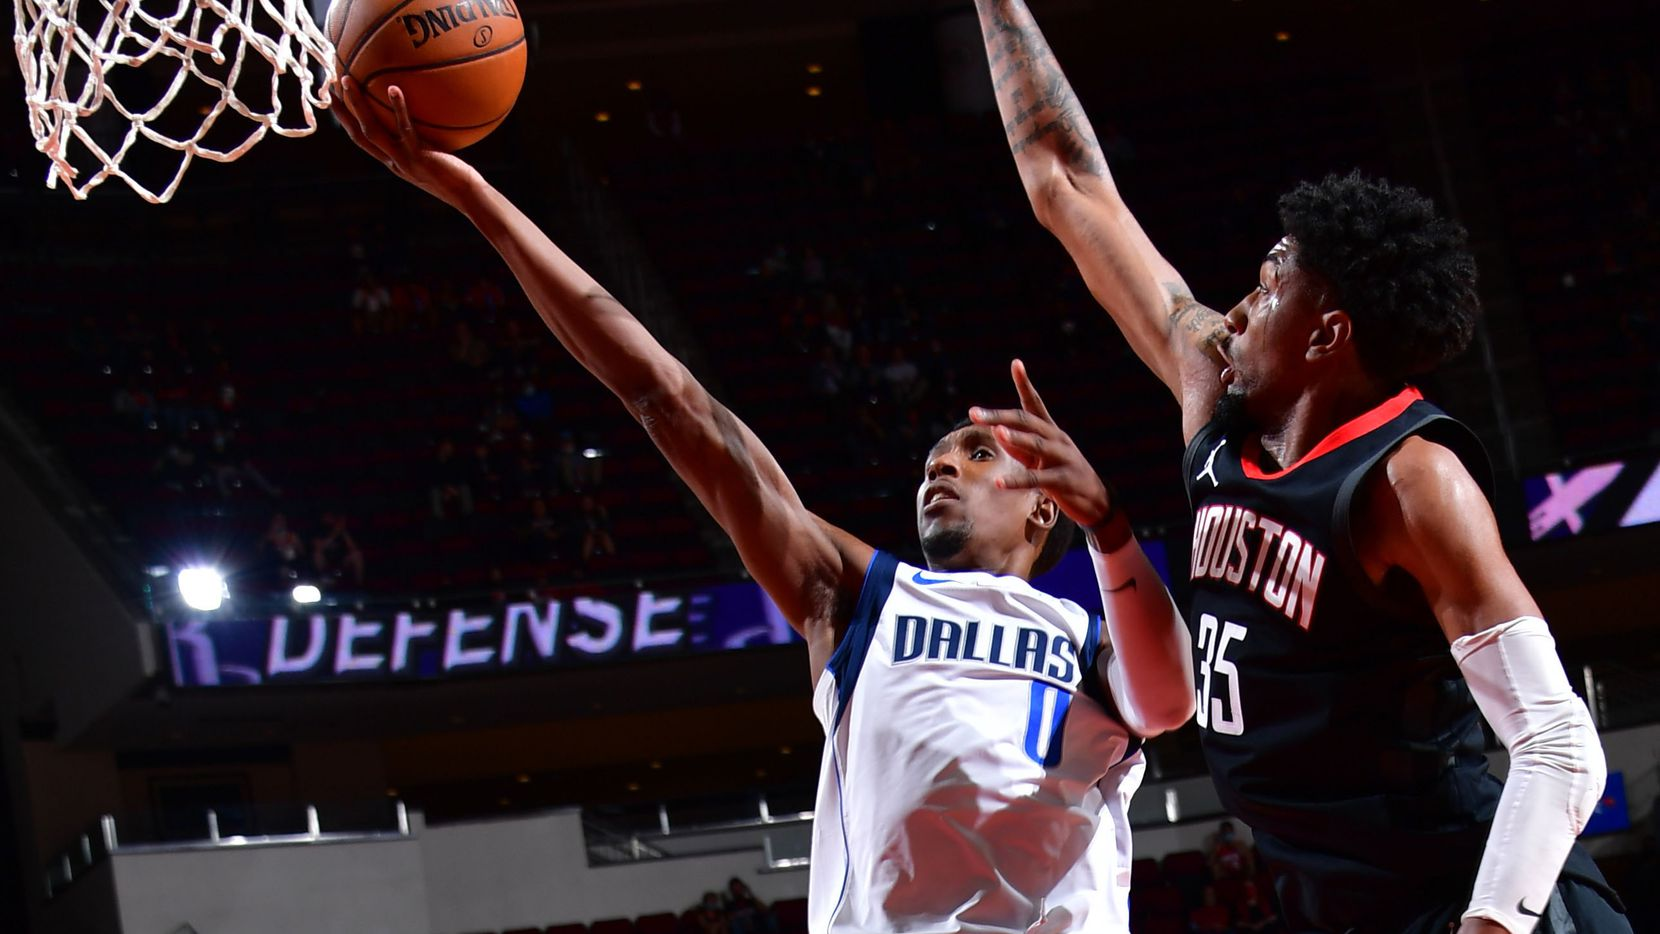 HOUSTON, TX - JANUARY 4: Josh Richardson #0 of the Dallas Mavericks shoots the ball against forward Christian Wood of the Houston Rockets on January 4, 2021 at the Toyota Center in Houston, Texas.